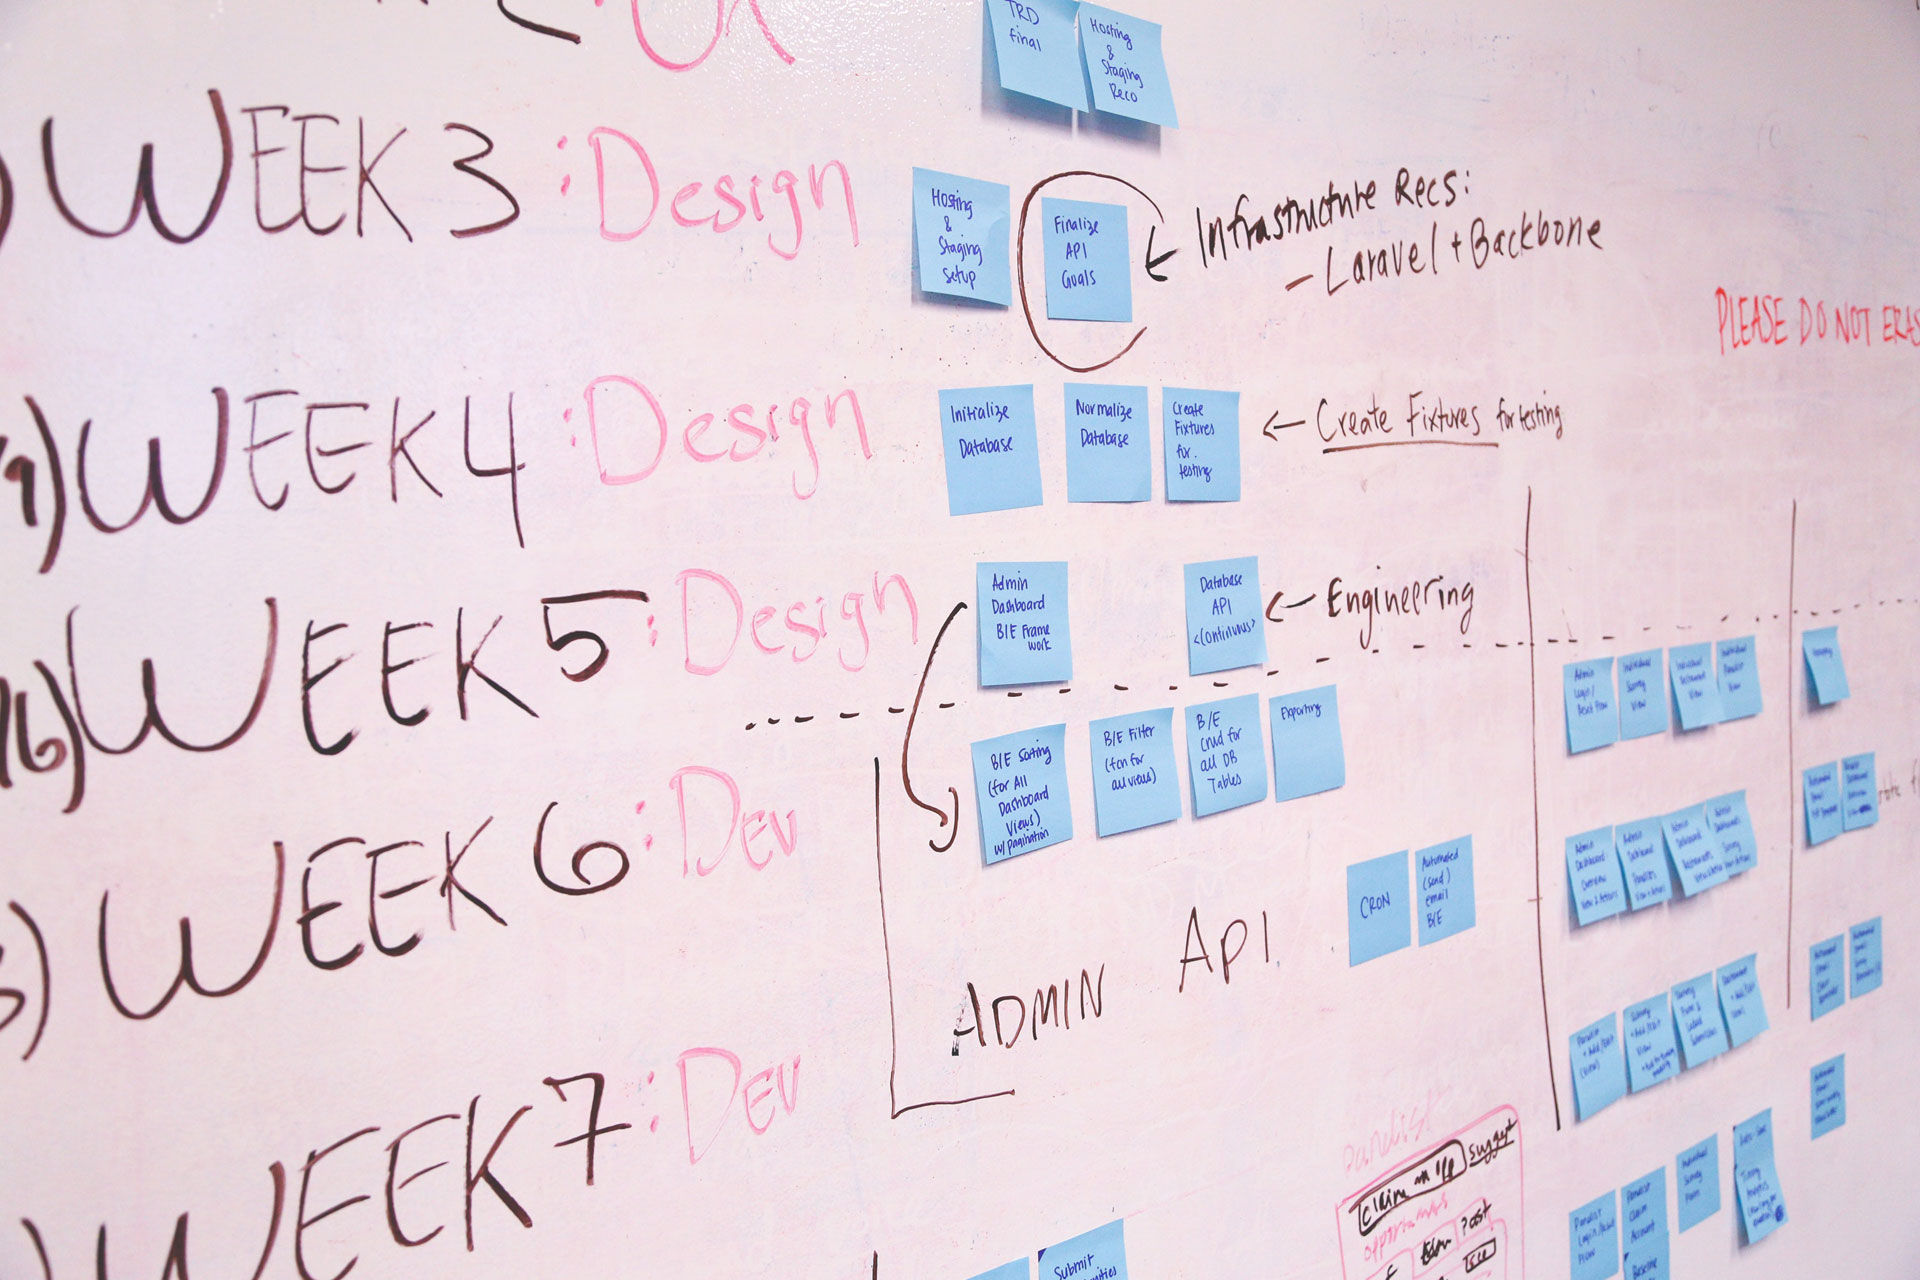 PROJECT-MANAGEMENT-img4